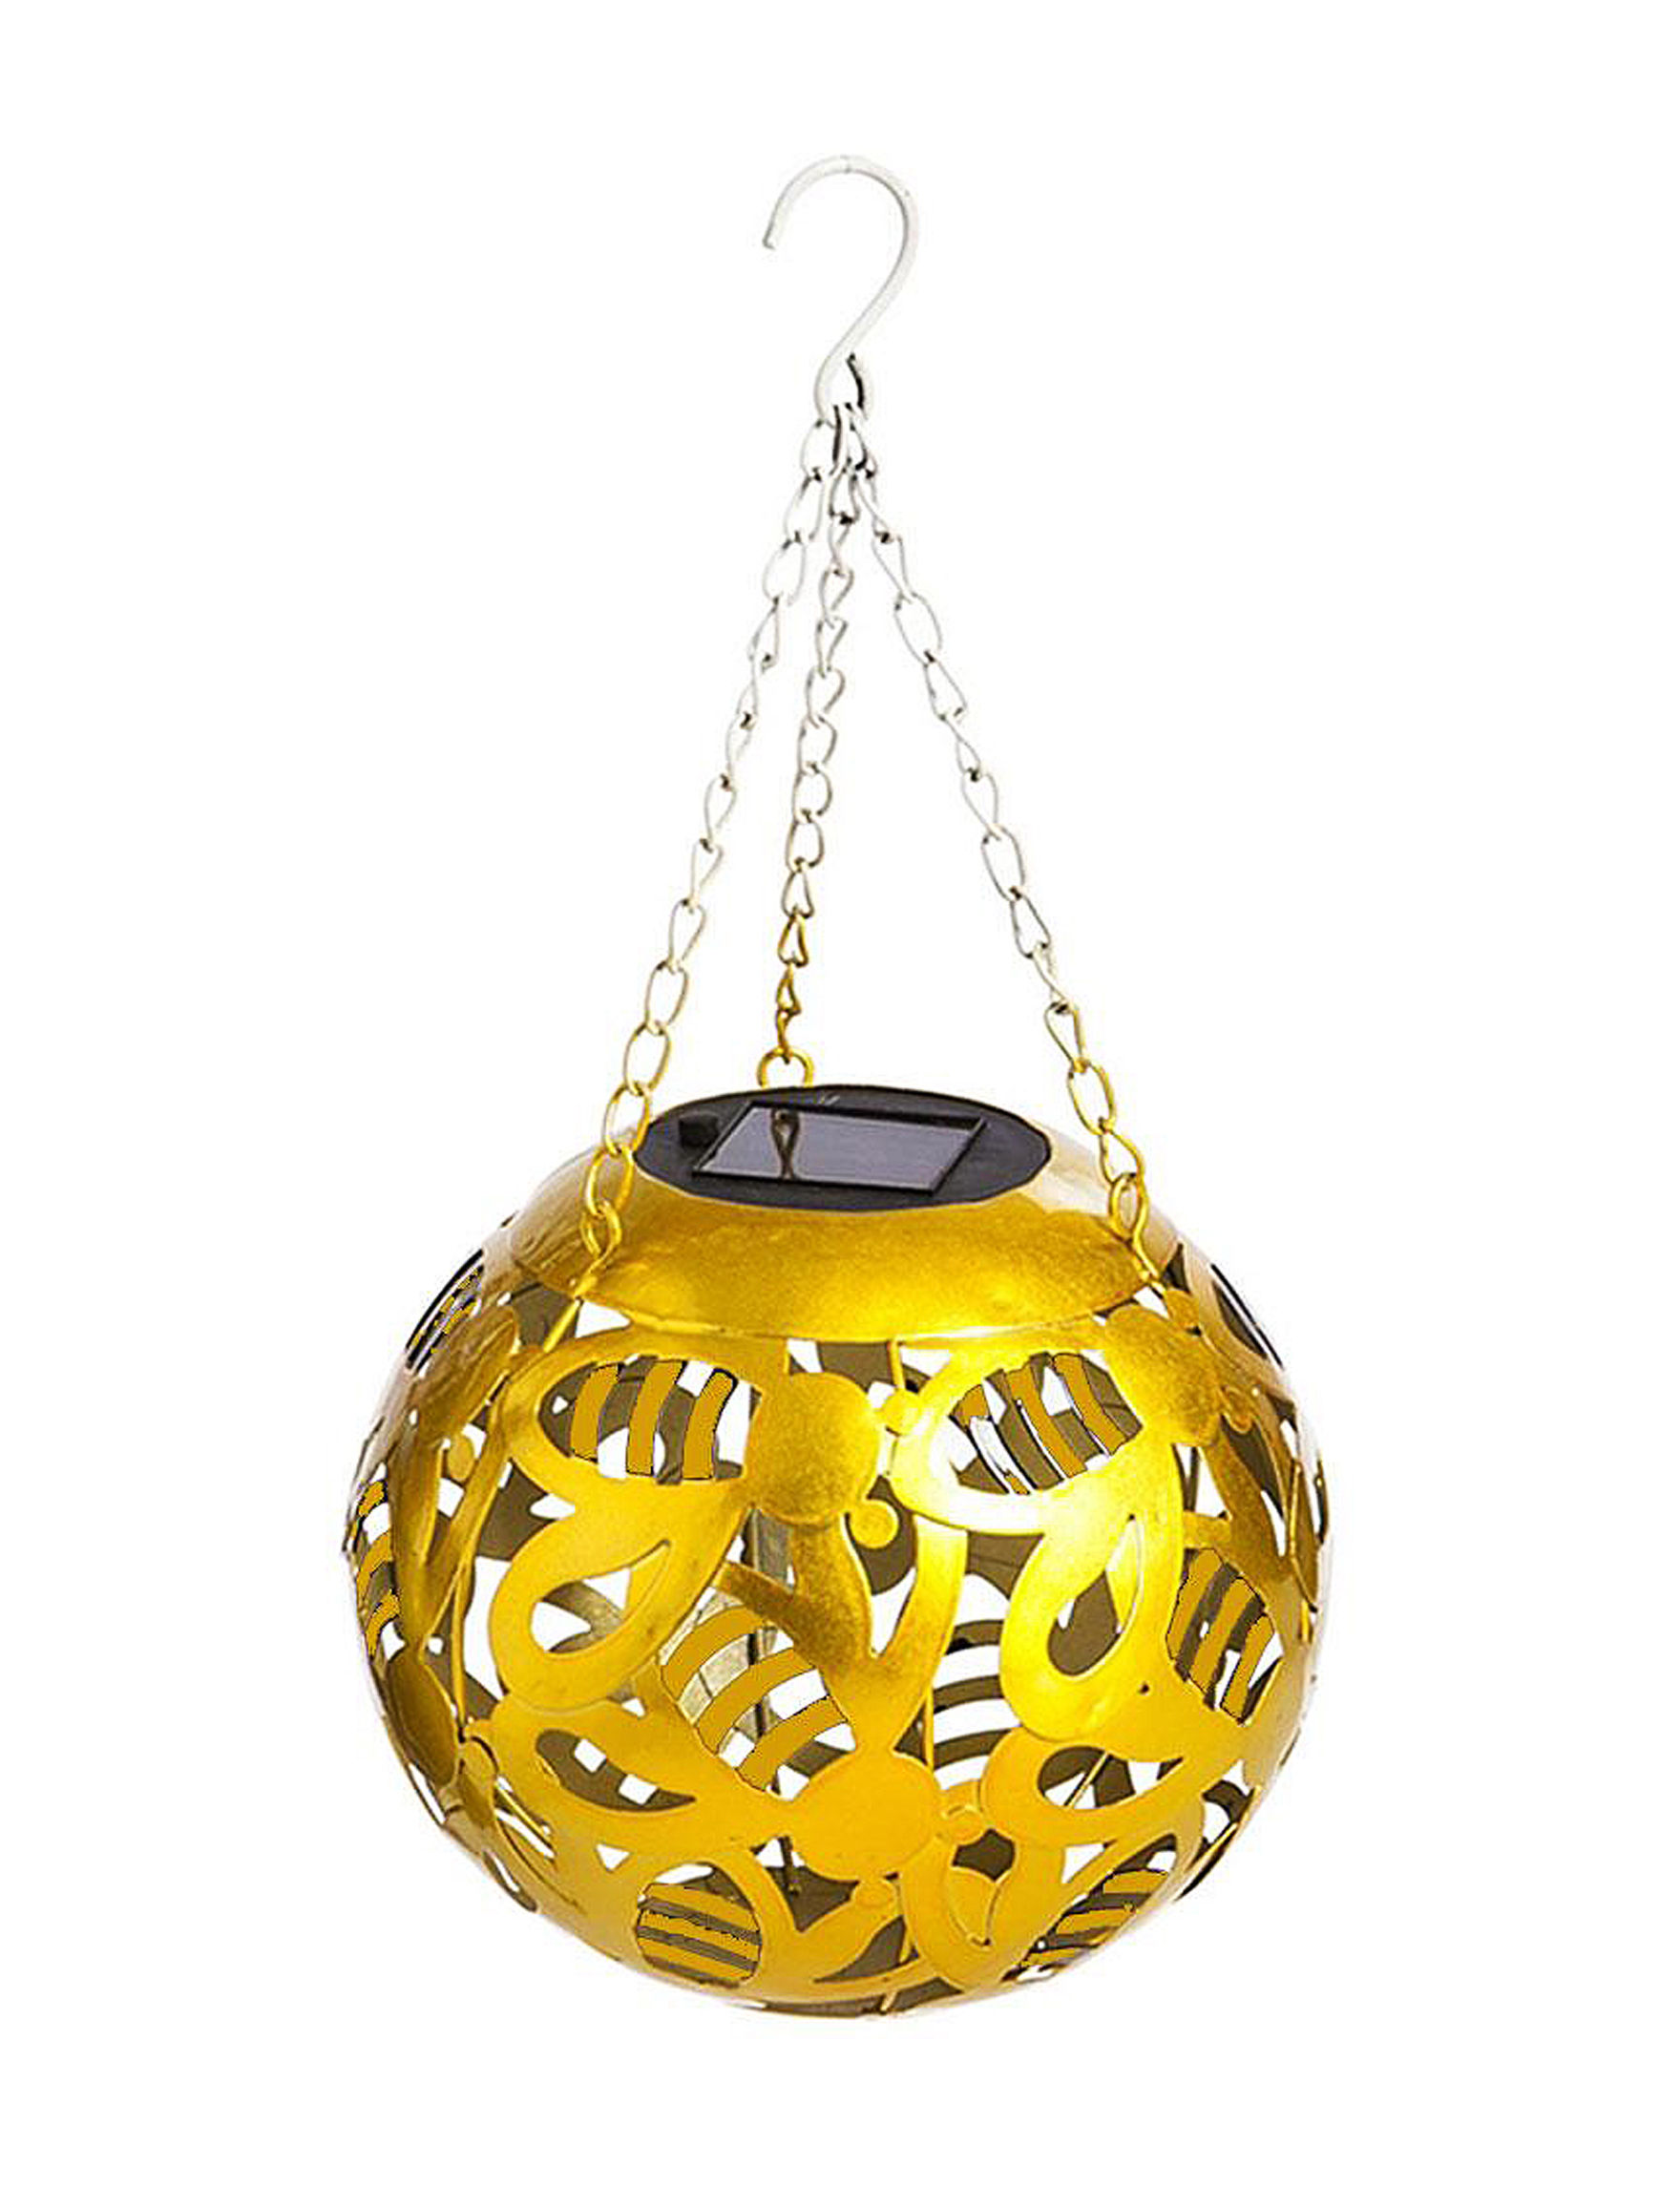 B&G Sales Inc. Gold Garden Decor & Planters Lights & Lanterns Outdoor Decor